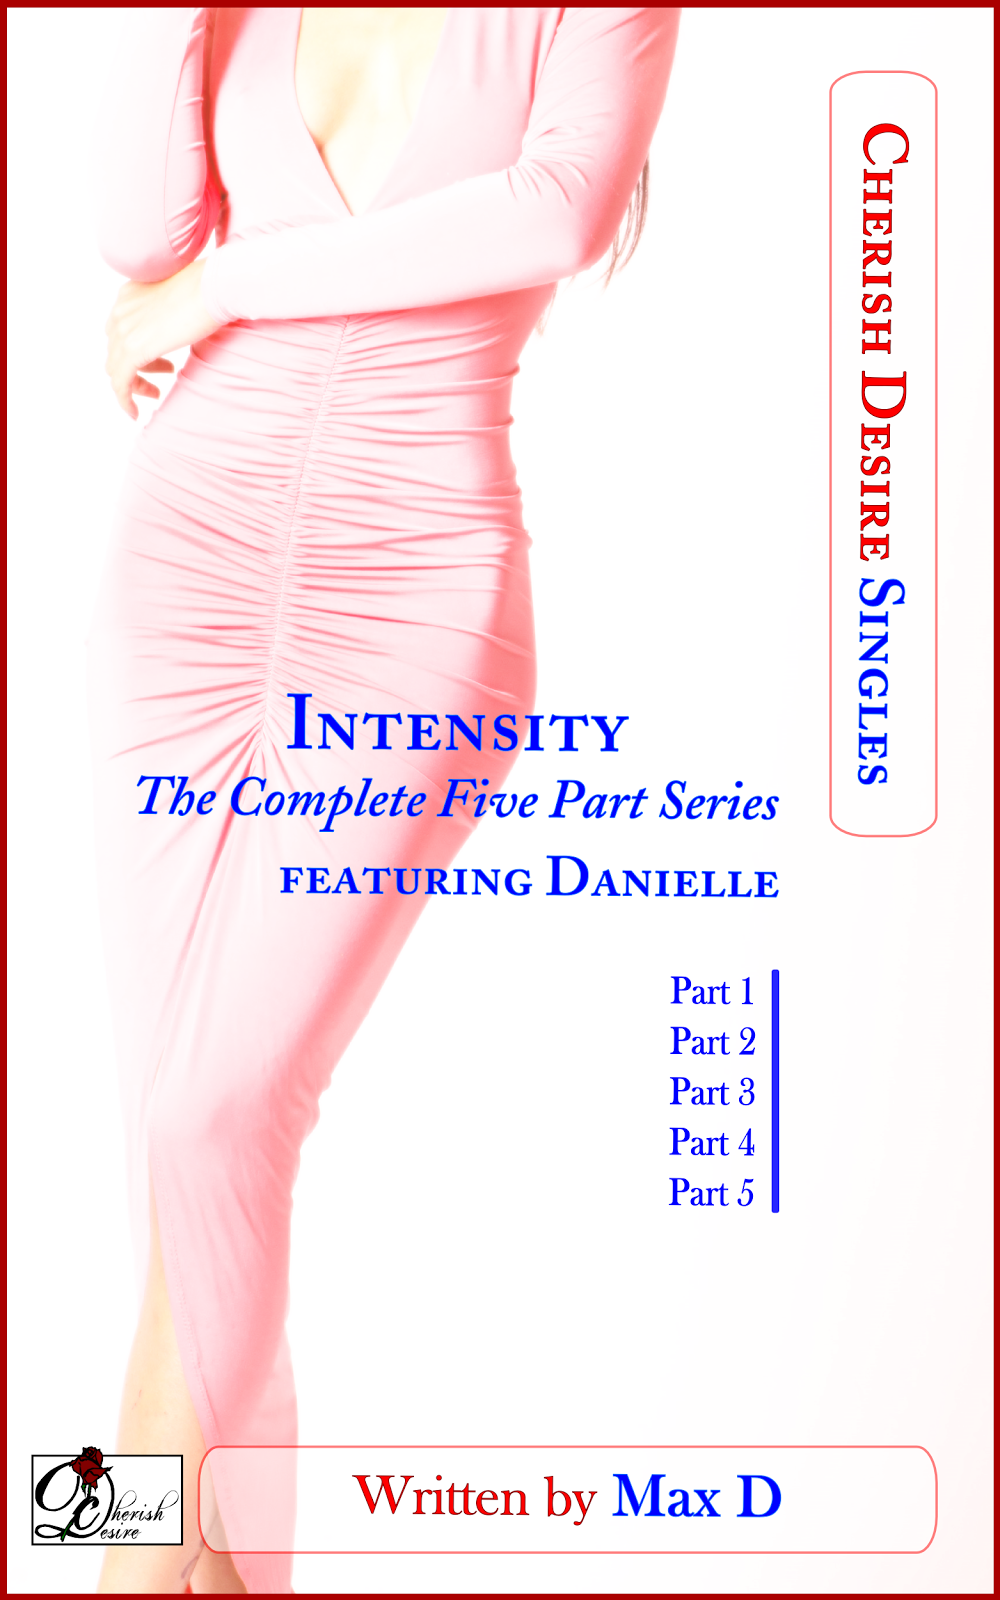 Cherish Desire Singles: Intensity (The Complete Five Part Series) featuring Danielle, Danielle, Ronin, Max D, erotica